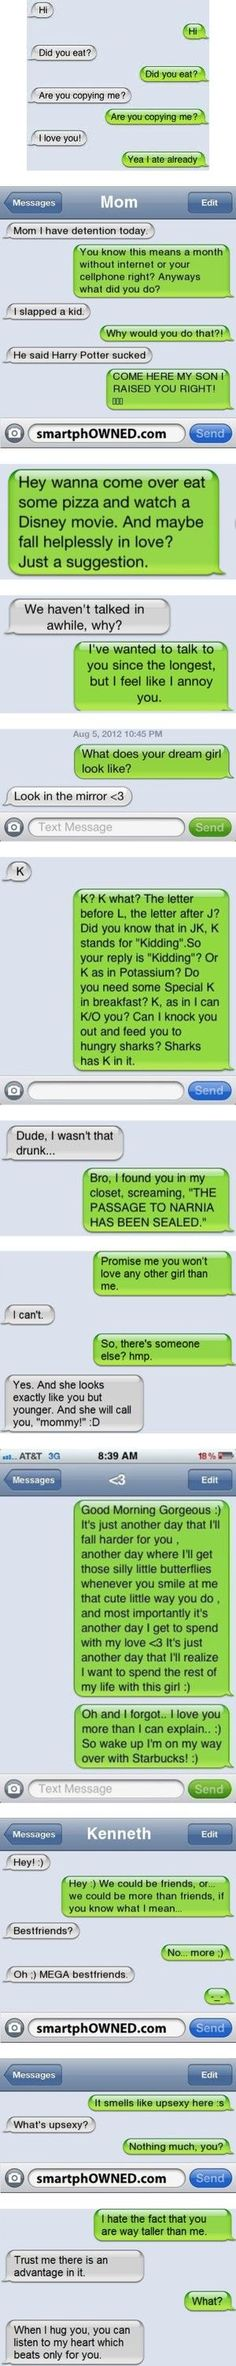 New Funny Quotes For Boyfriend Humor Jokes Text Messages 24 Ideas Funny Quotes, Funny Memes, Hilarious Texts, Funny Drunk, Funny Gym, Epic Texts, Funny Tweets, Funny Fails, Qoutes